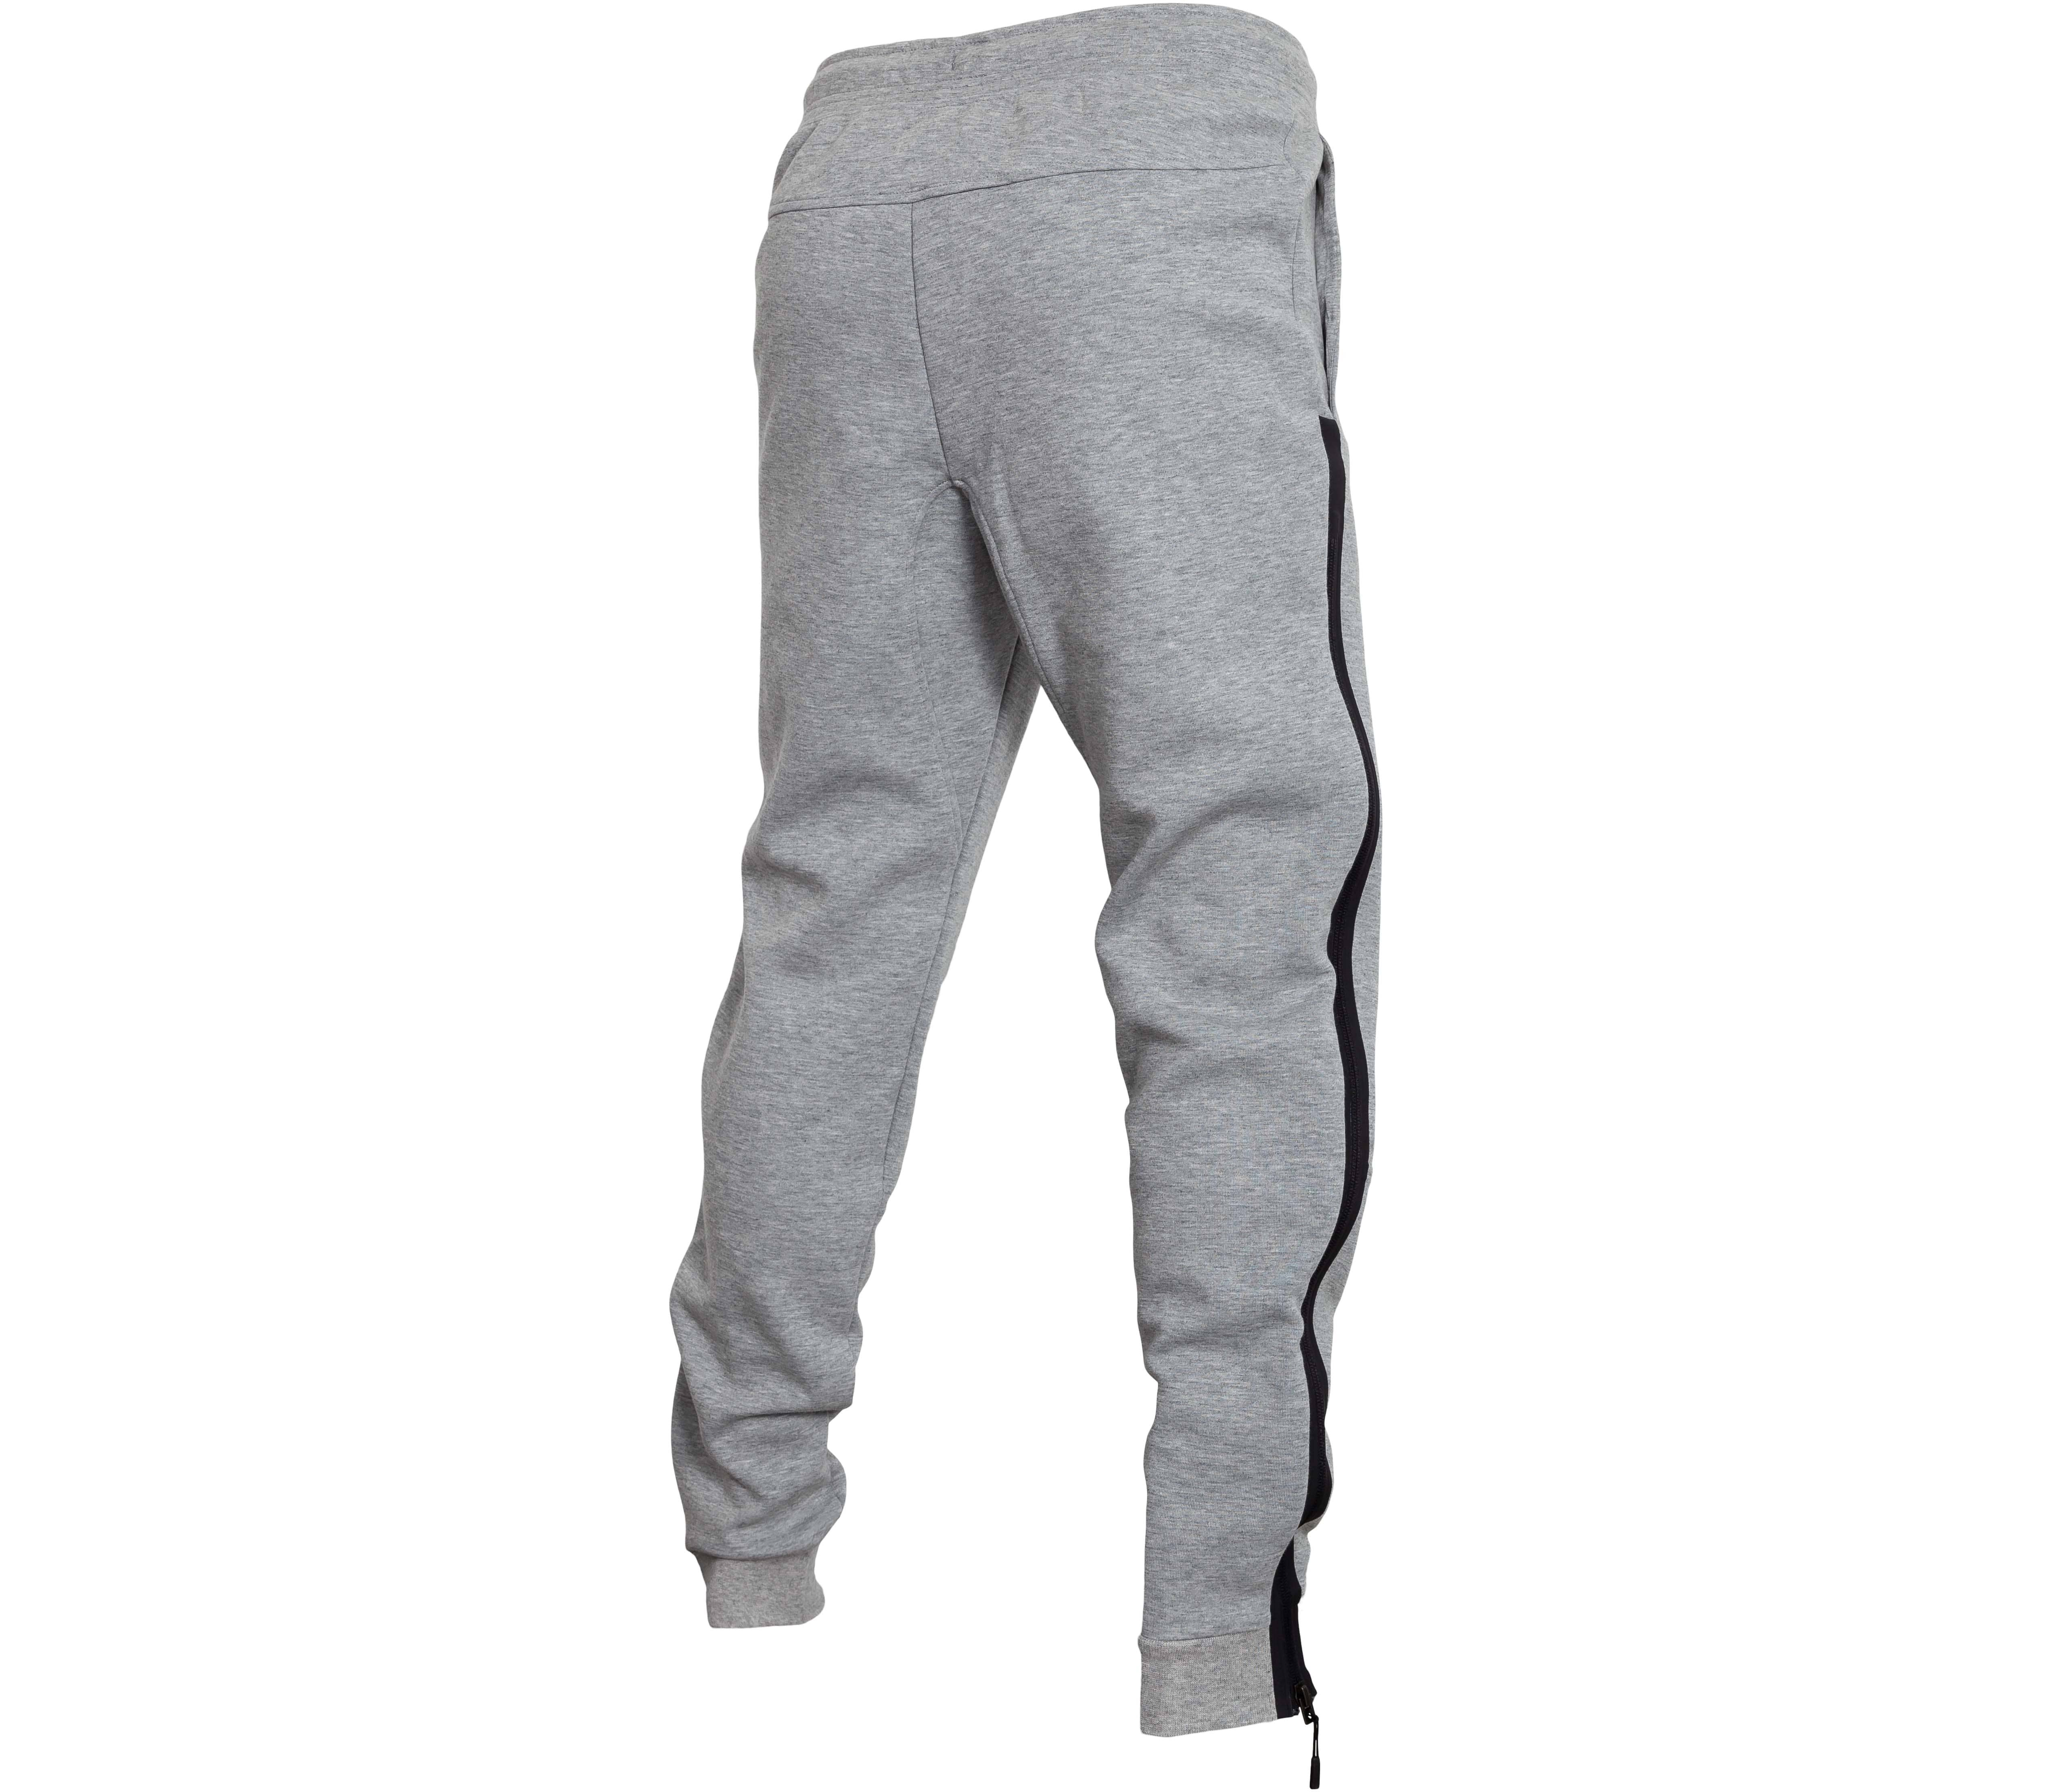 Tech Fleece Femmes Pantalon jogger